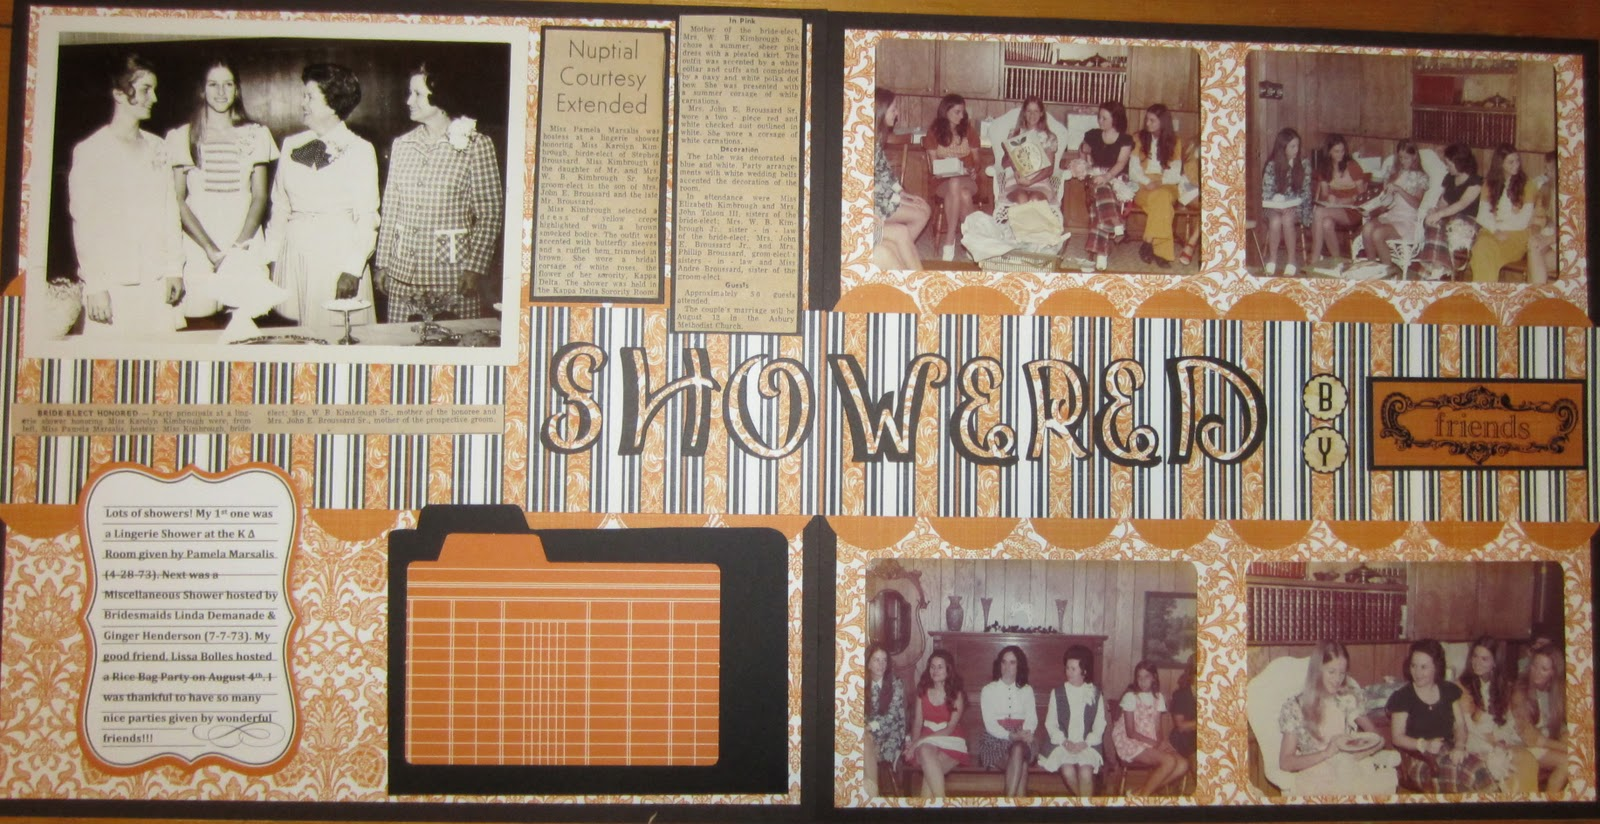 Ziplining scrapbook ideas - Another Page For Her Wedding Scrapbook Based On One Of Their Showers